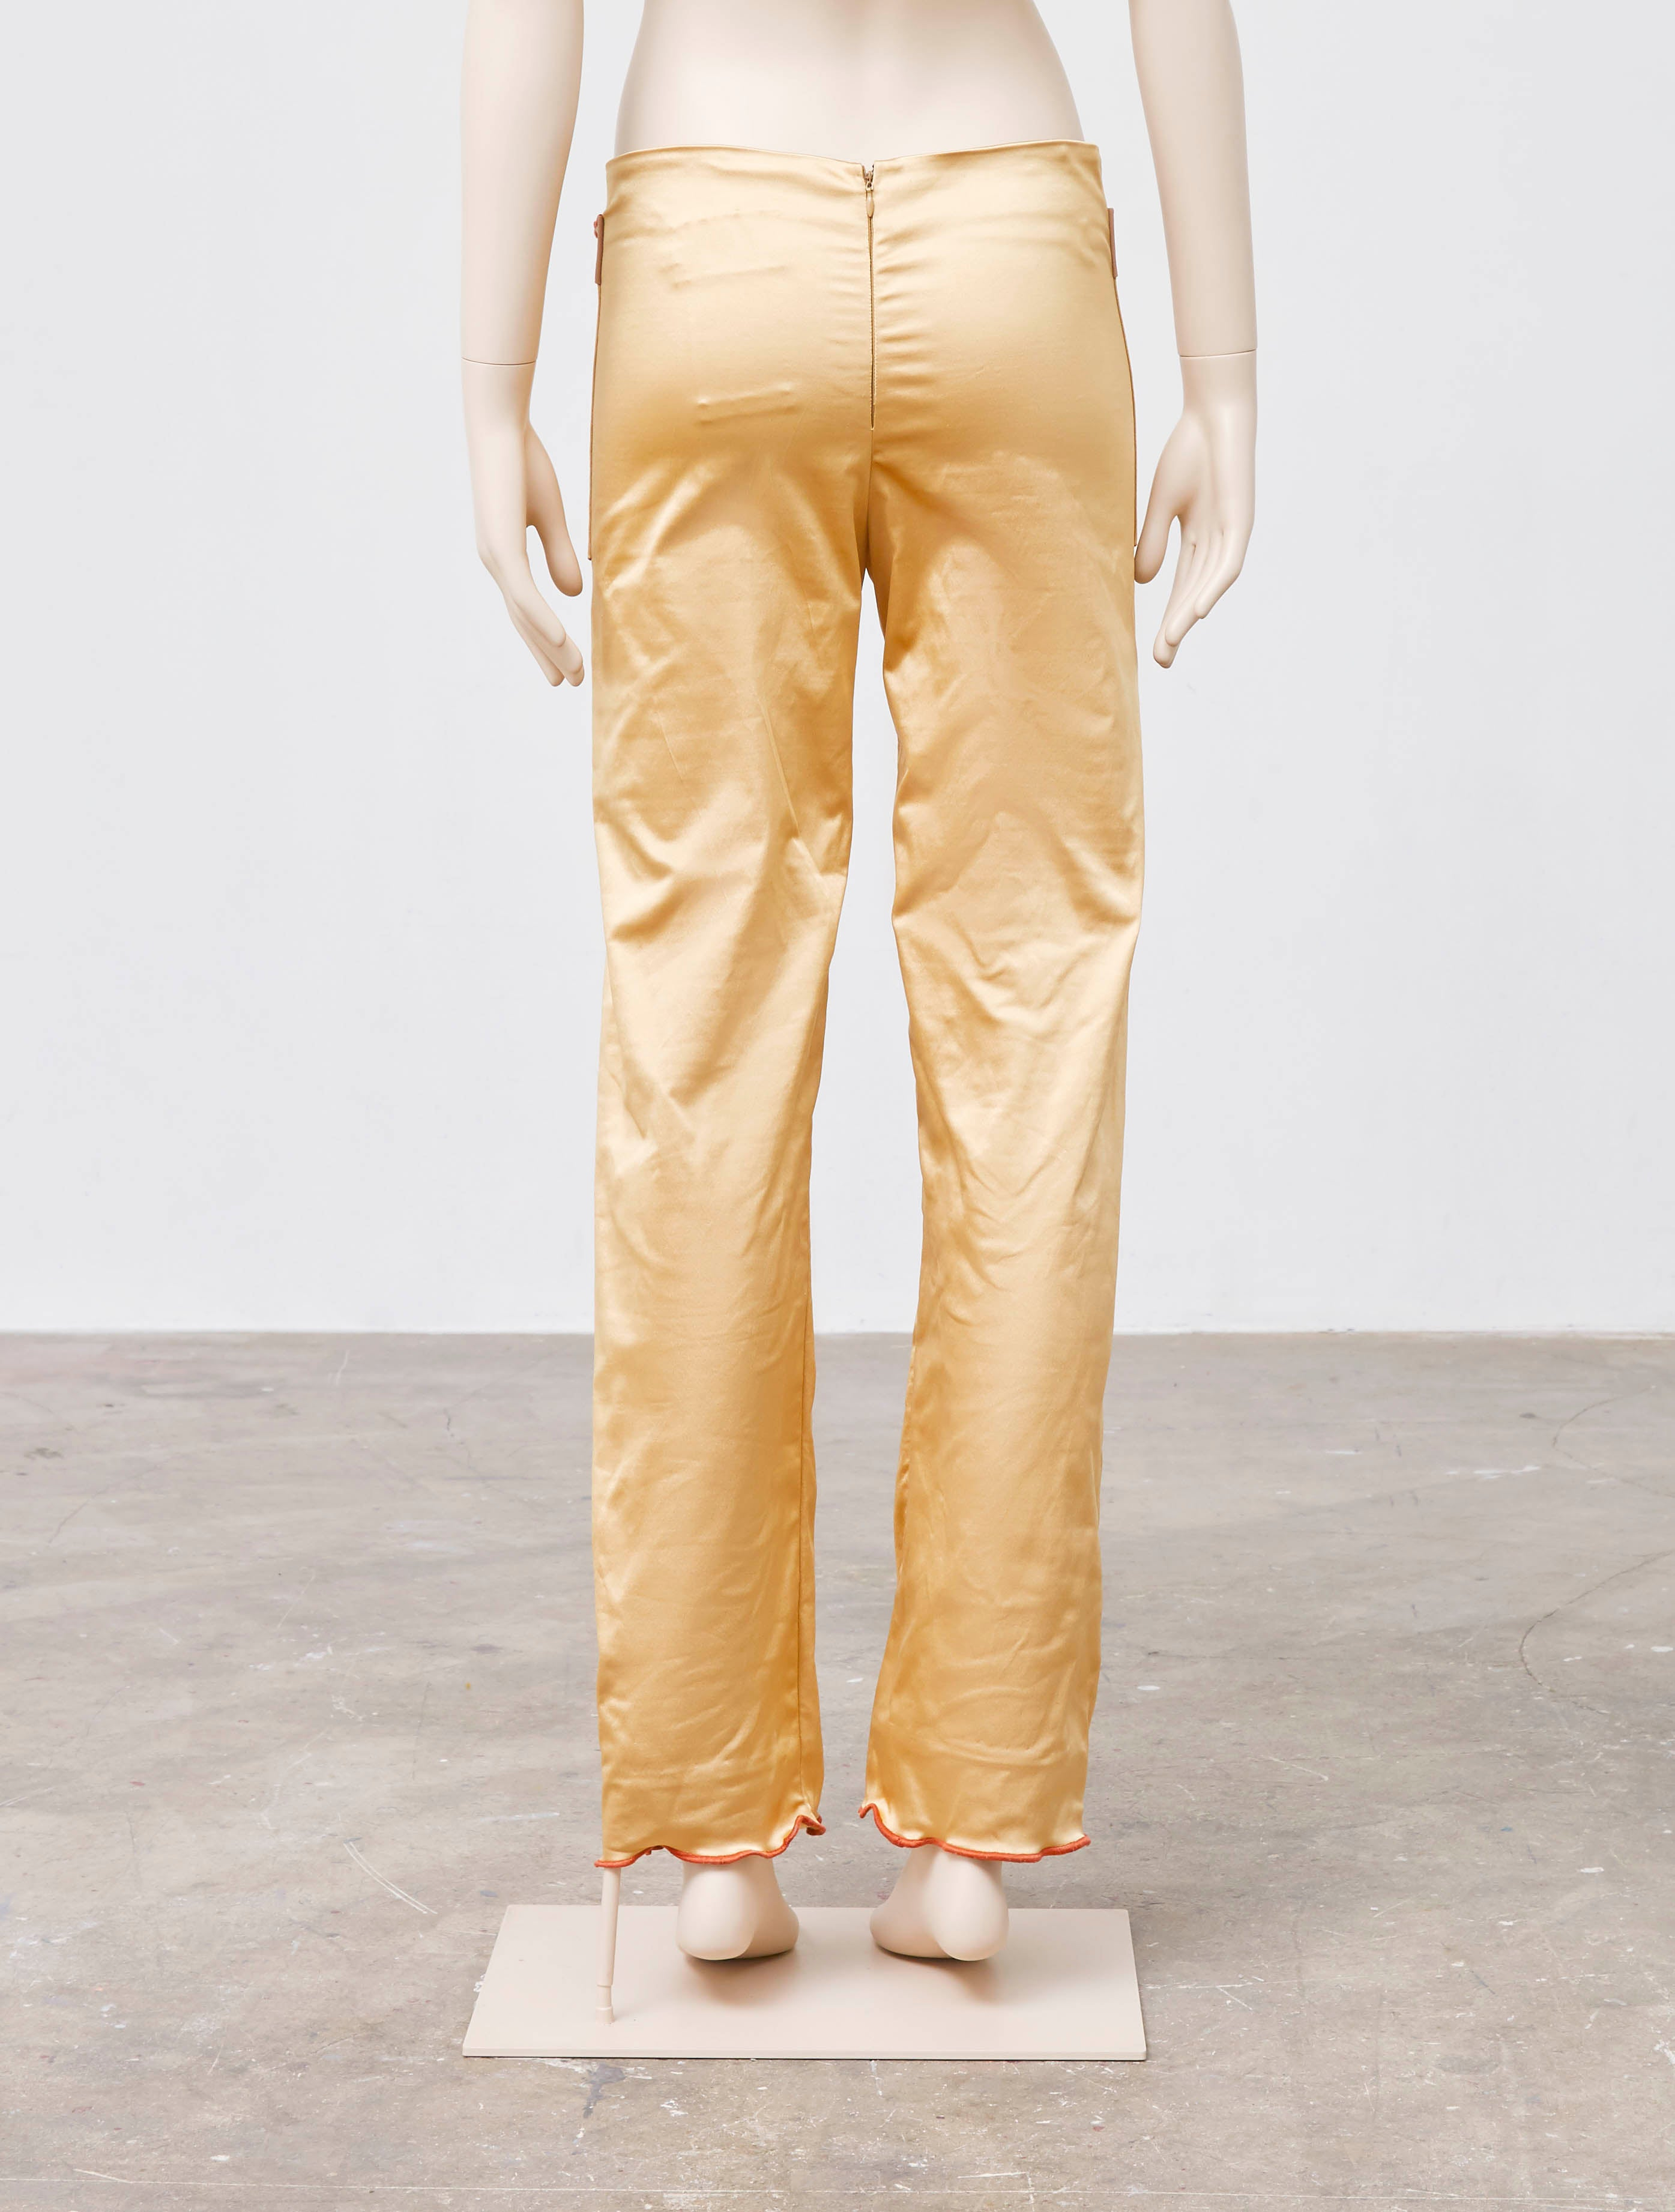 Peet Dullaert Crunched Techno-Wave Trousers